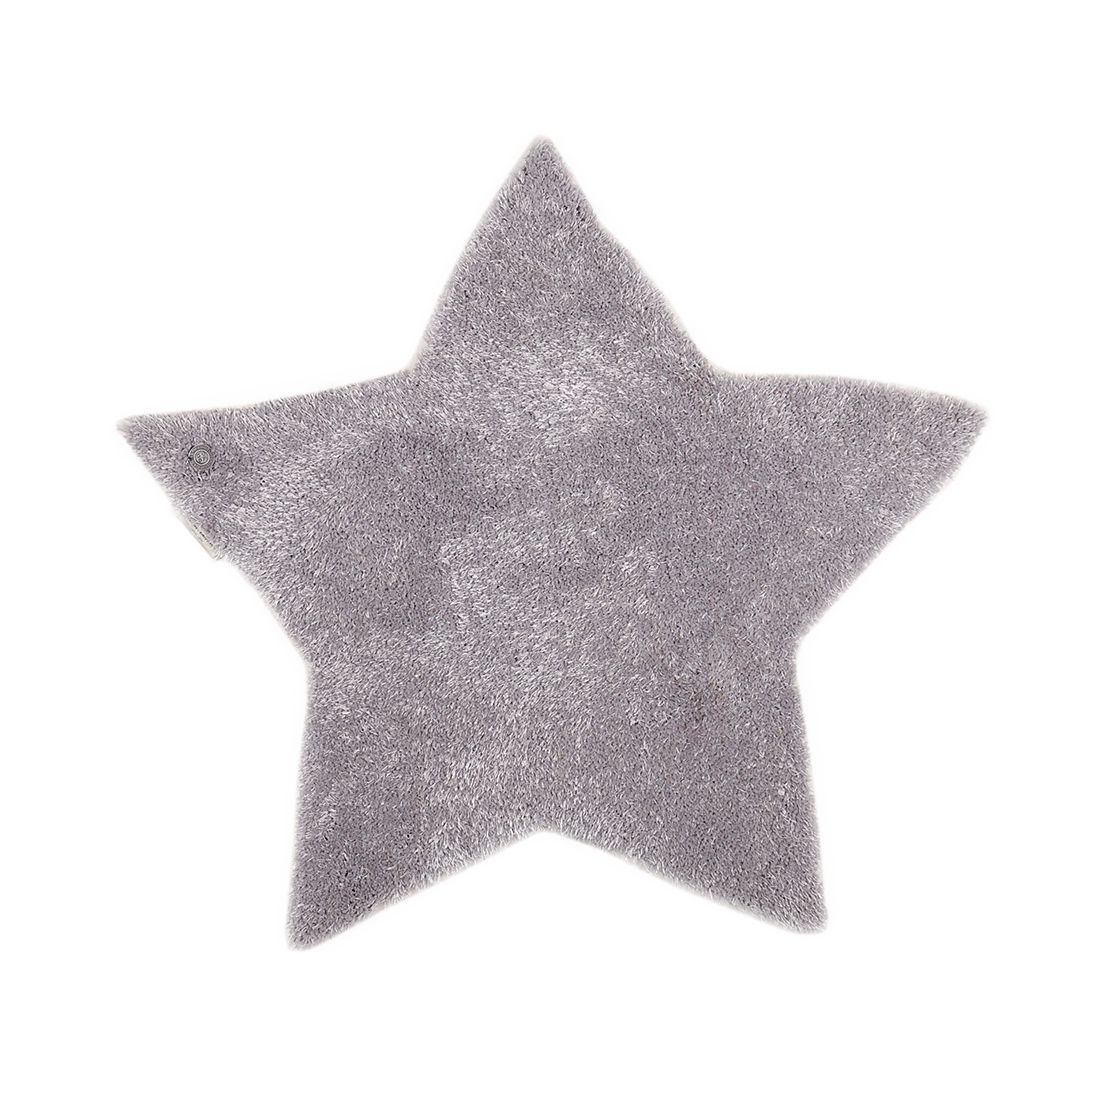 Home 24 - Tapis soft star - gris - 100 x 100 cm, tom tailor